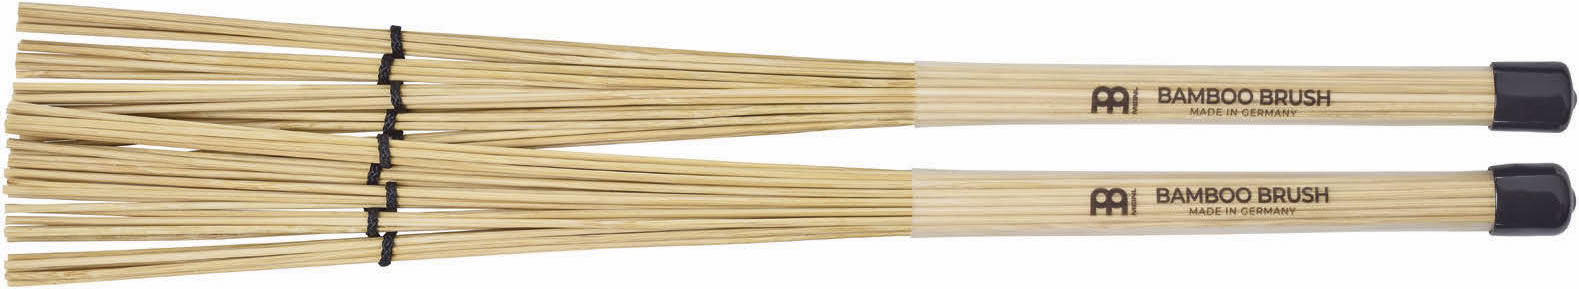 Meinl Stick and Brush - Bamboo Brush